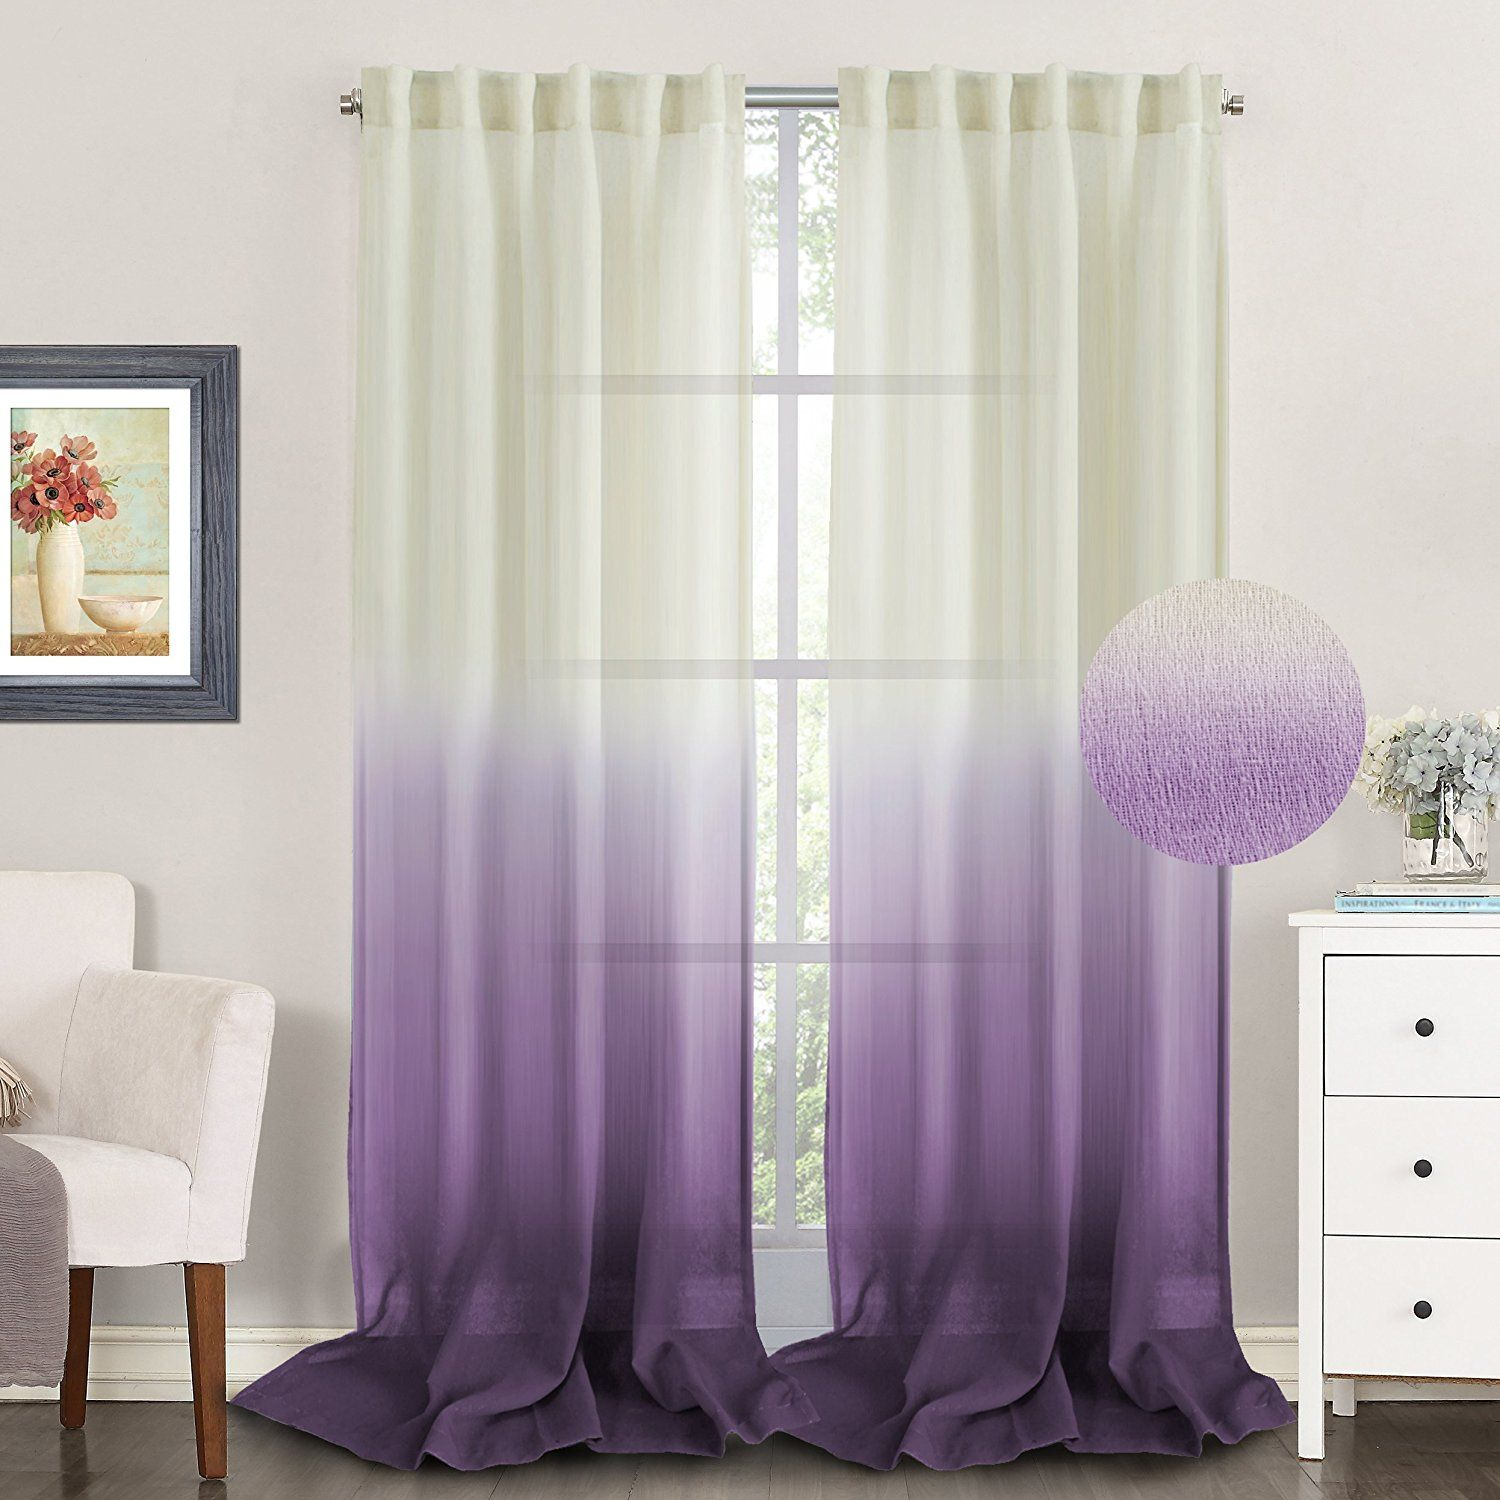 TURQUOIZE Ombre Semi Sheer Curtains Spring Drapes Back Tab Rod Pocket Linen Filmy